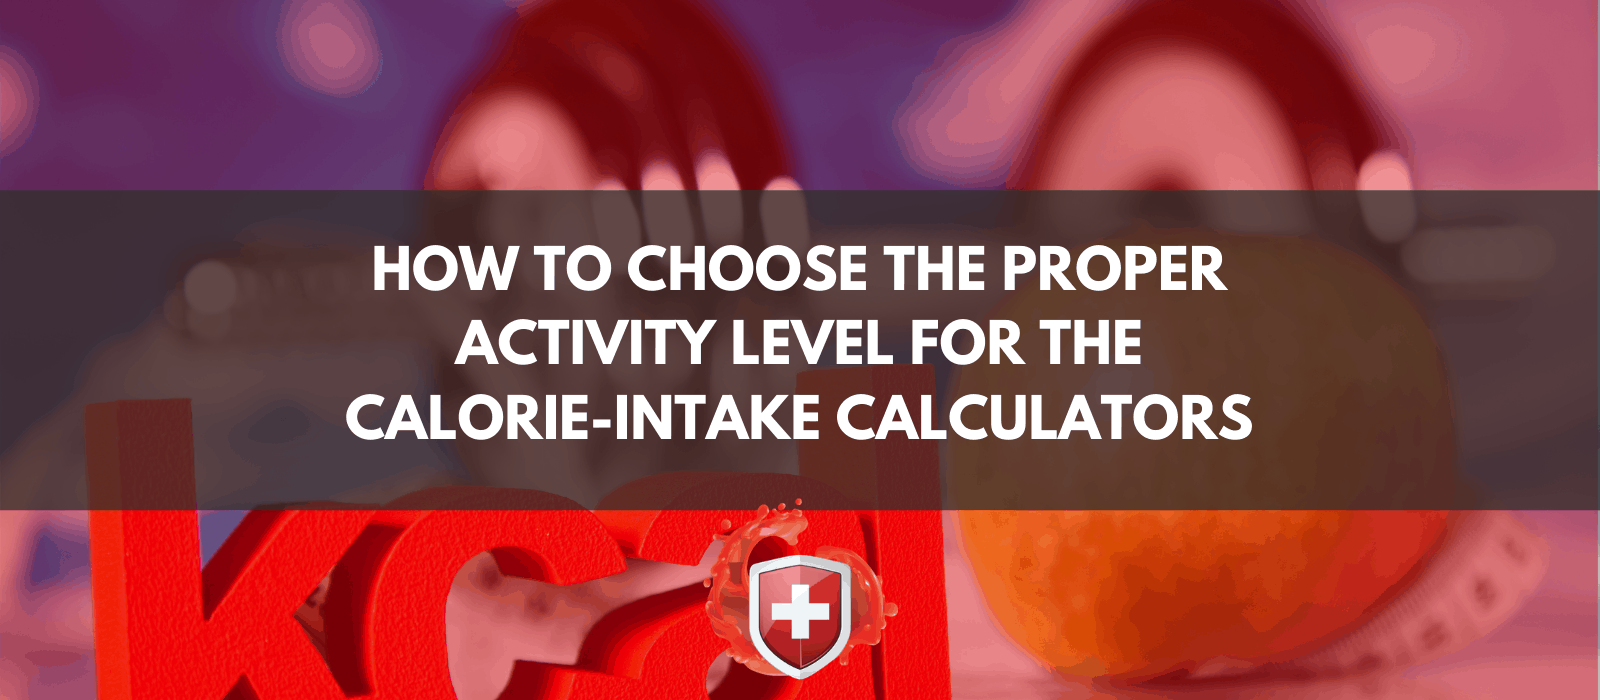 How to Choose the Proper Activity Level for the Calorie-intake Calculators